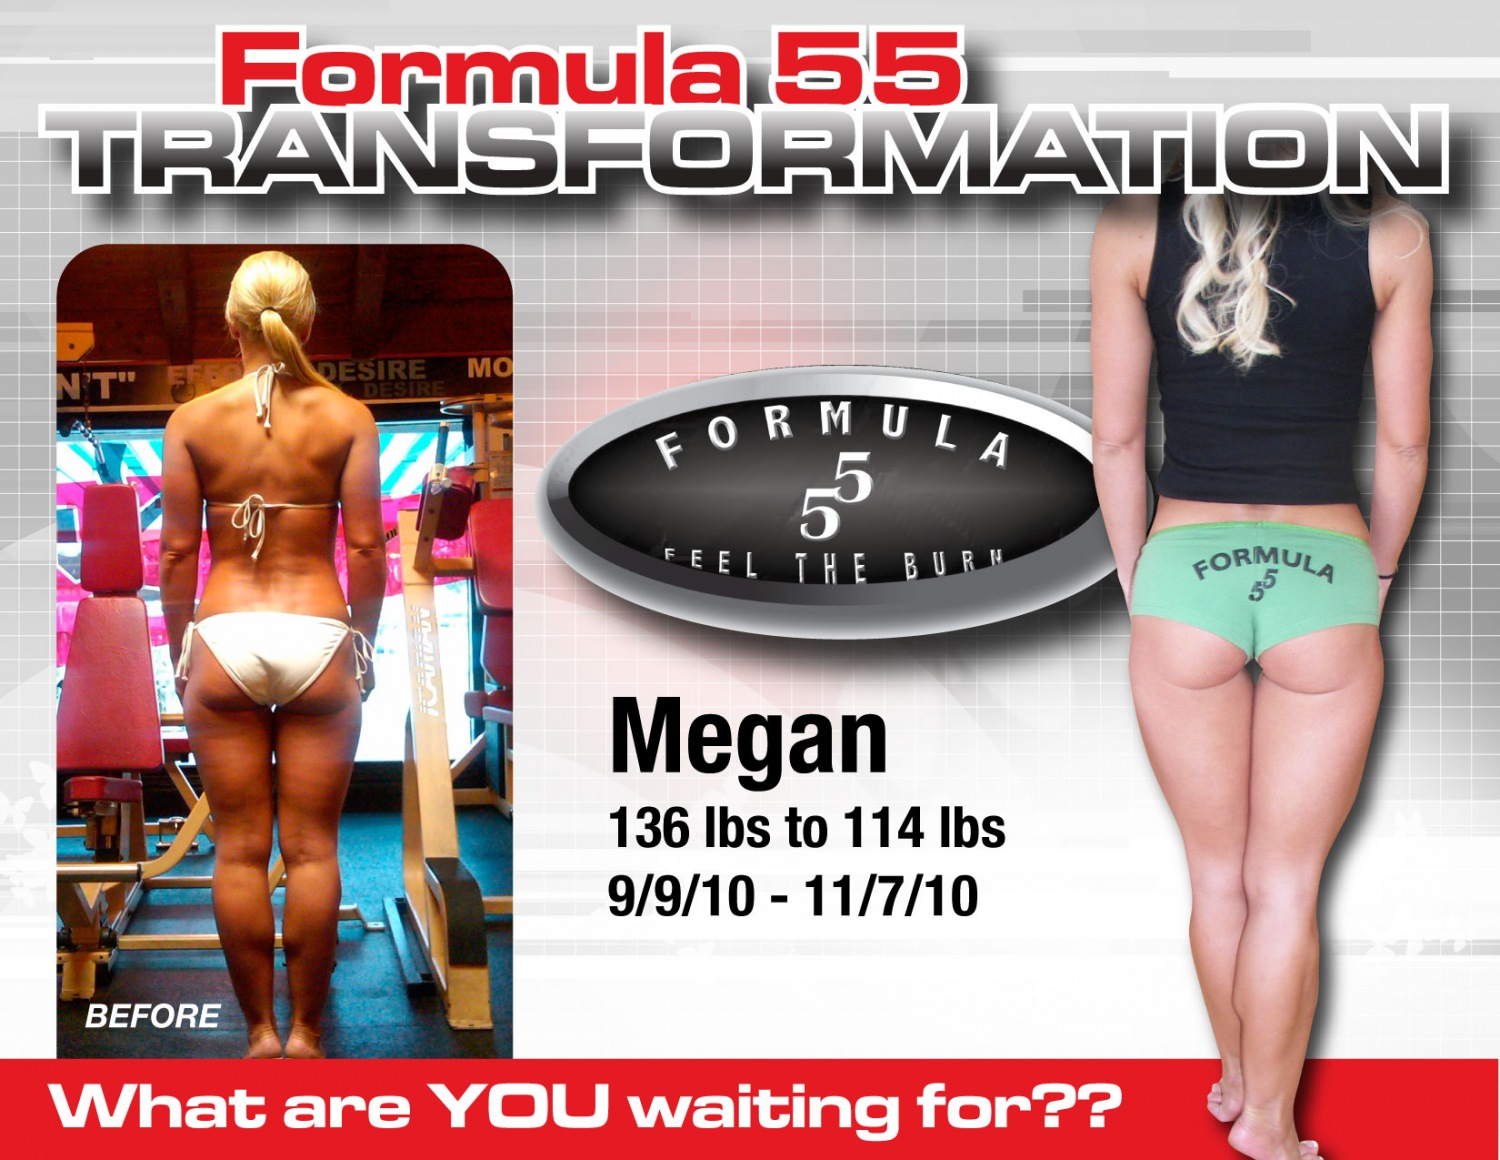 form-55-Transformation-Megan-back.jpg